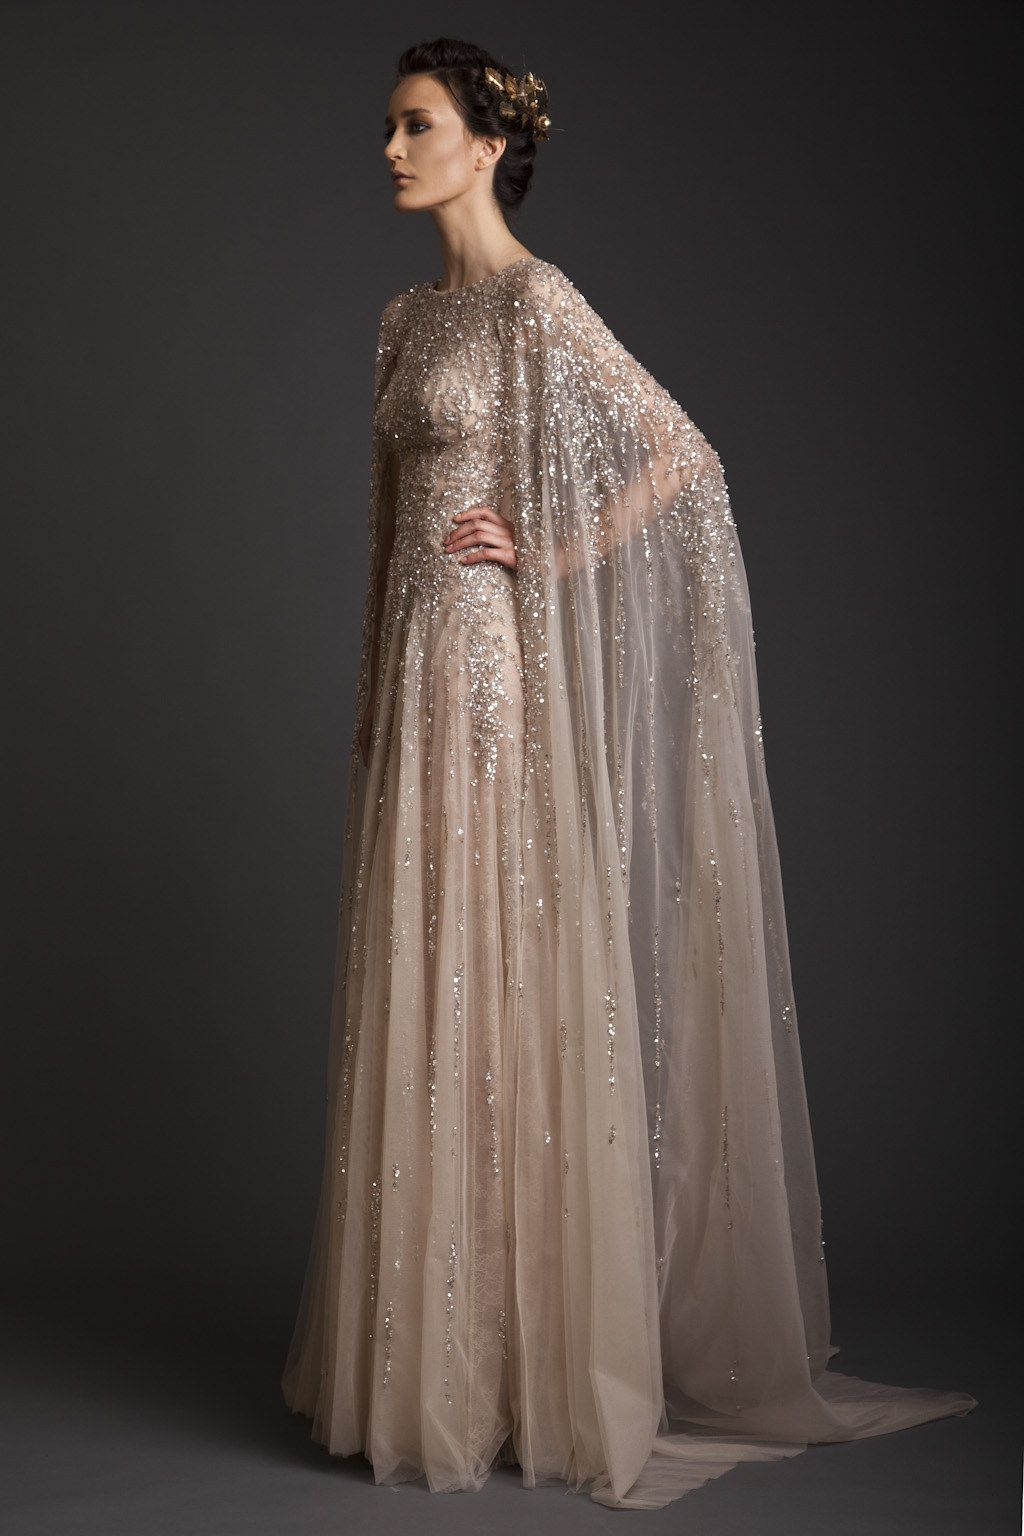 21 Breathtaking Couture Gowns Fit For An Ice Queen Gowns Belle Of